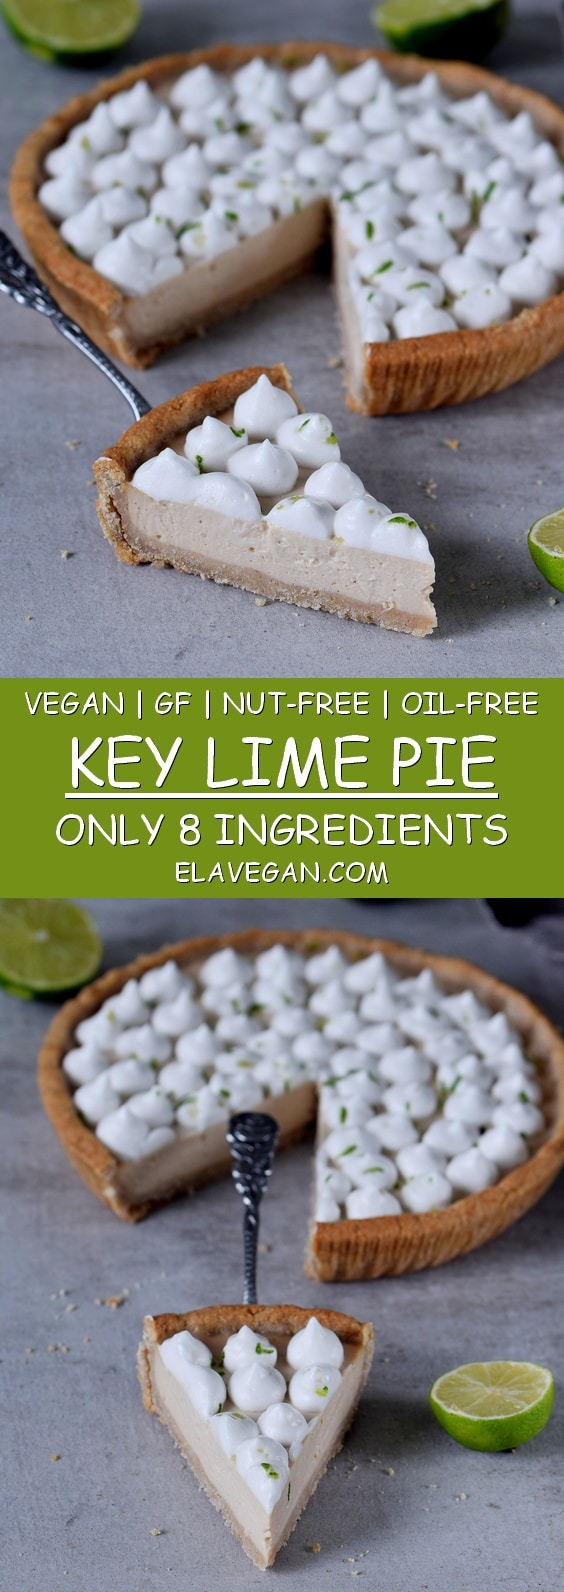 vegan key lime pie with marshmallow fluff gluten-free healthy nut-free recipe